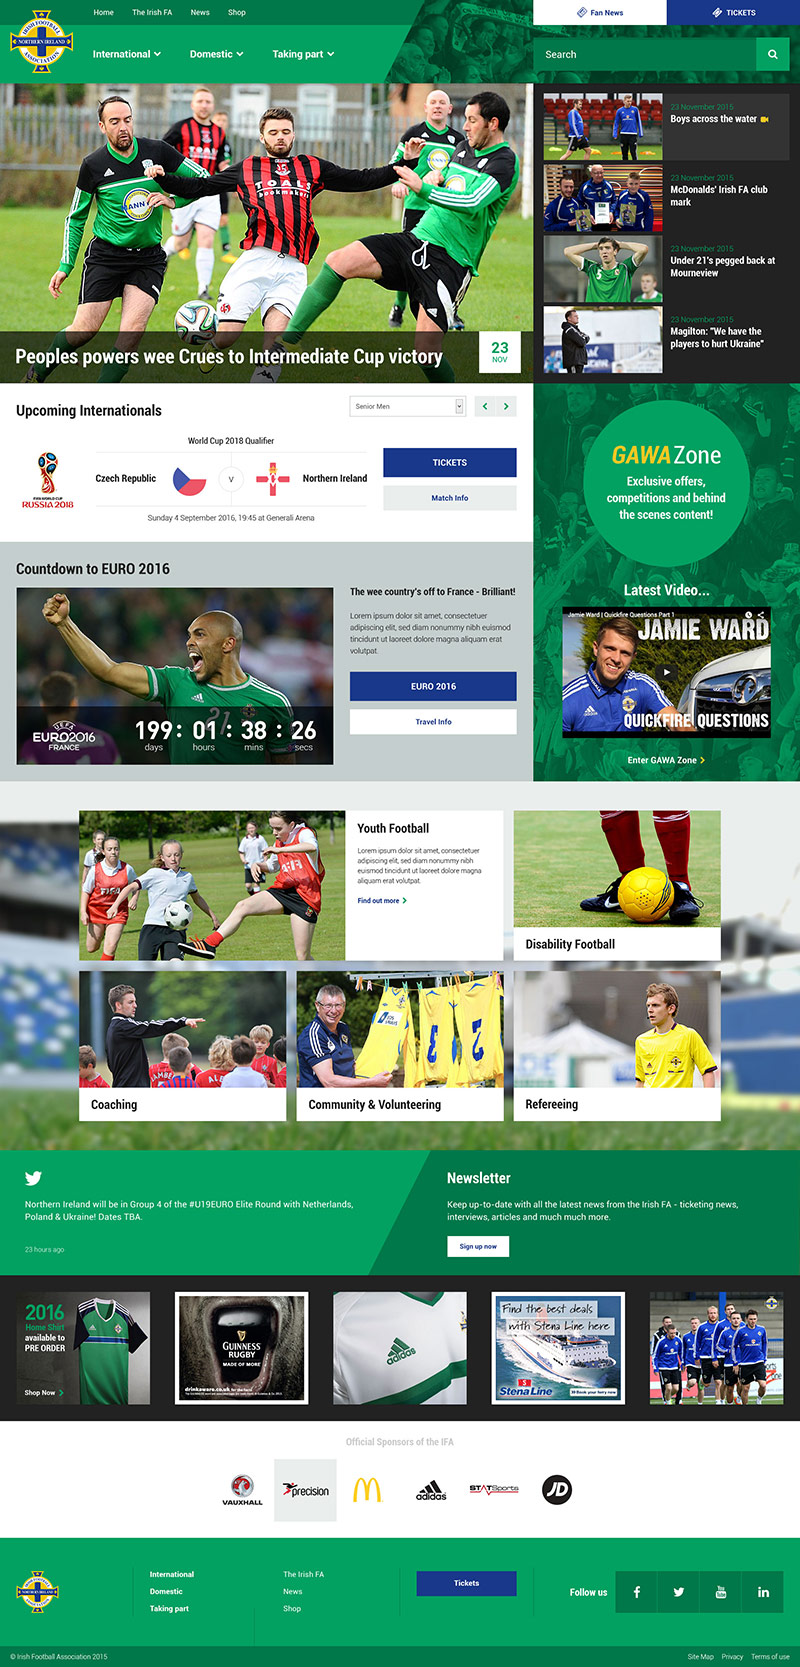 Irish FA Website full-page screenshot in situ